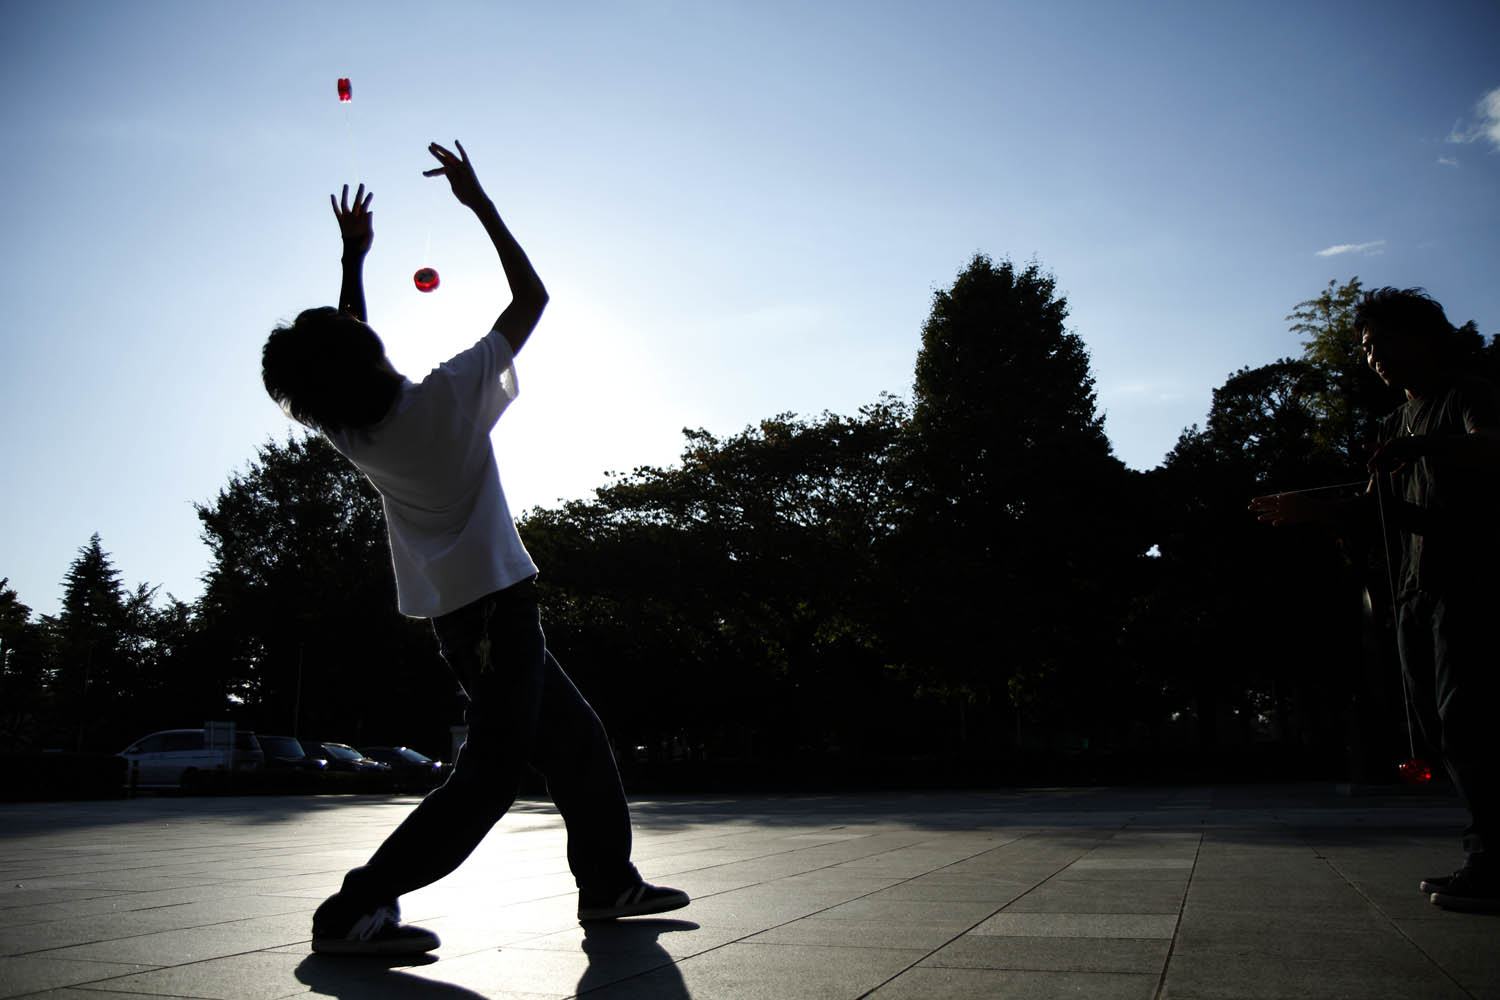 Where do some of the best yo-yoers go to practice? Apparently they go to a park just outside of Tokyo. Here former world yo-yo champion Takumi Nagase practices in a park in Kawaguchi, Japan, using two yo-yos, his specialty.